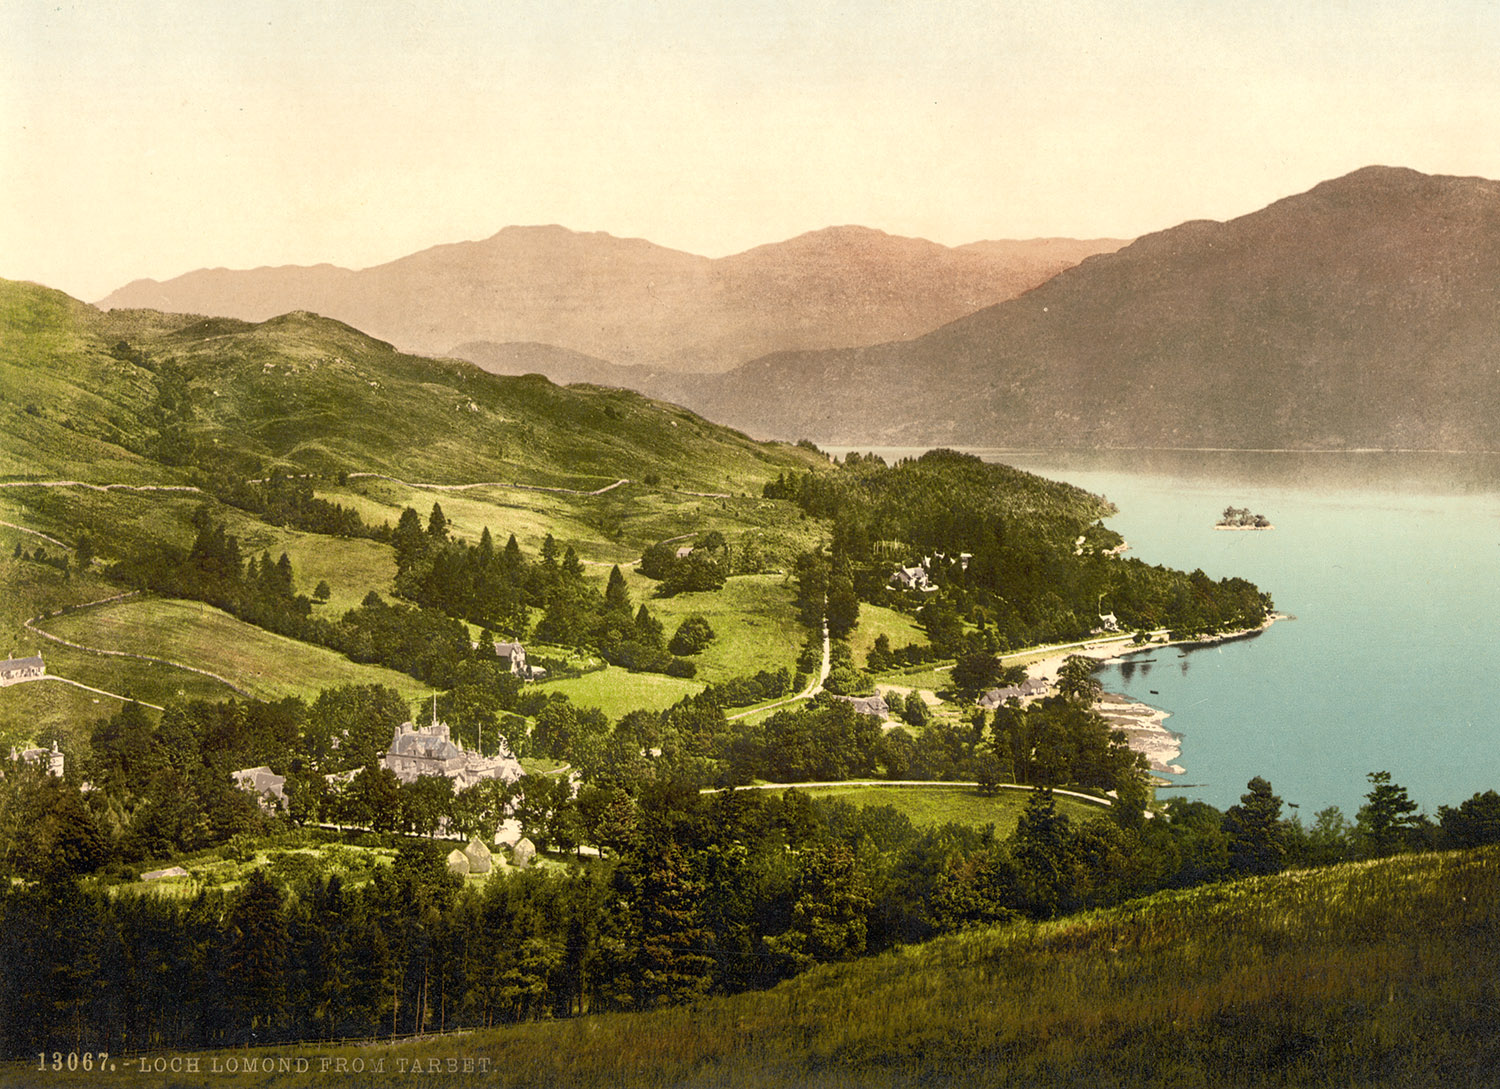 Loch Lomond from Tarbet, Scotland, 1890s.